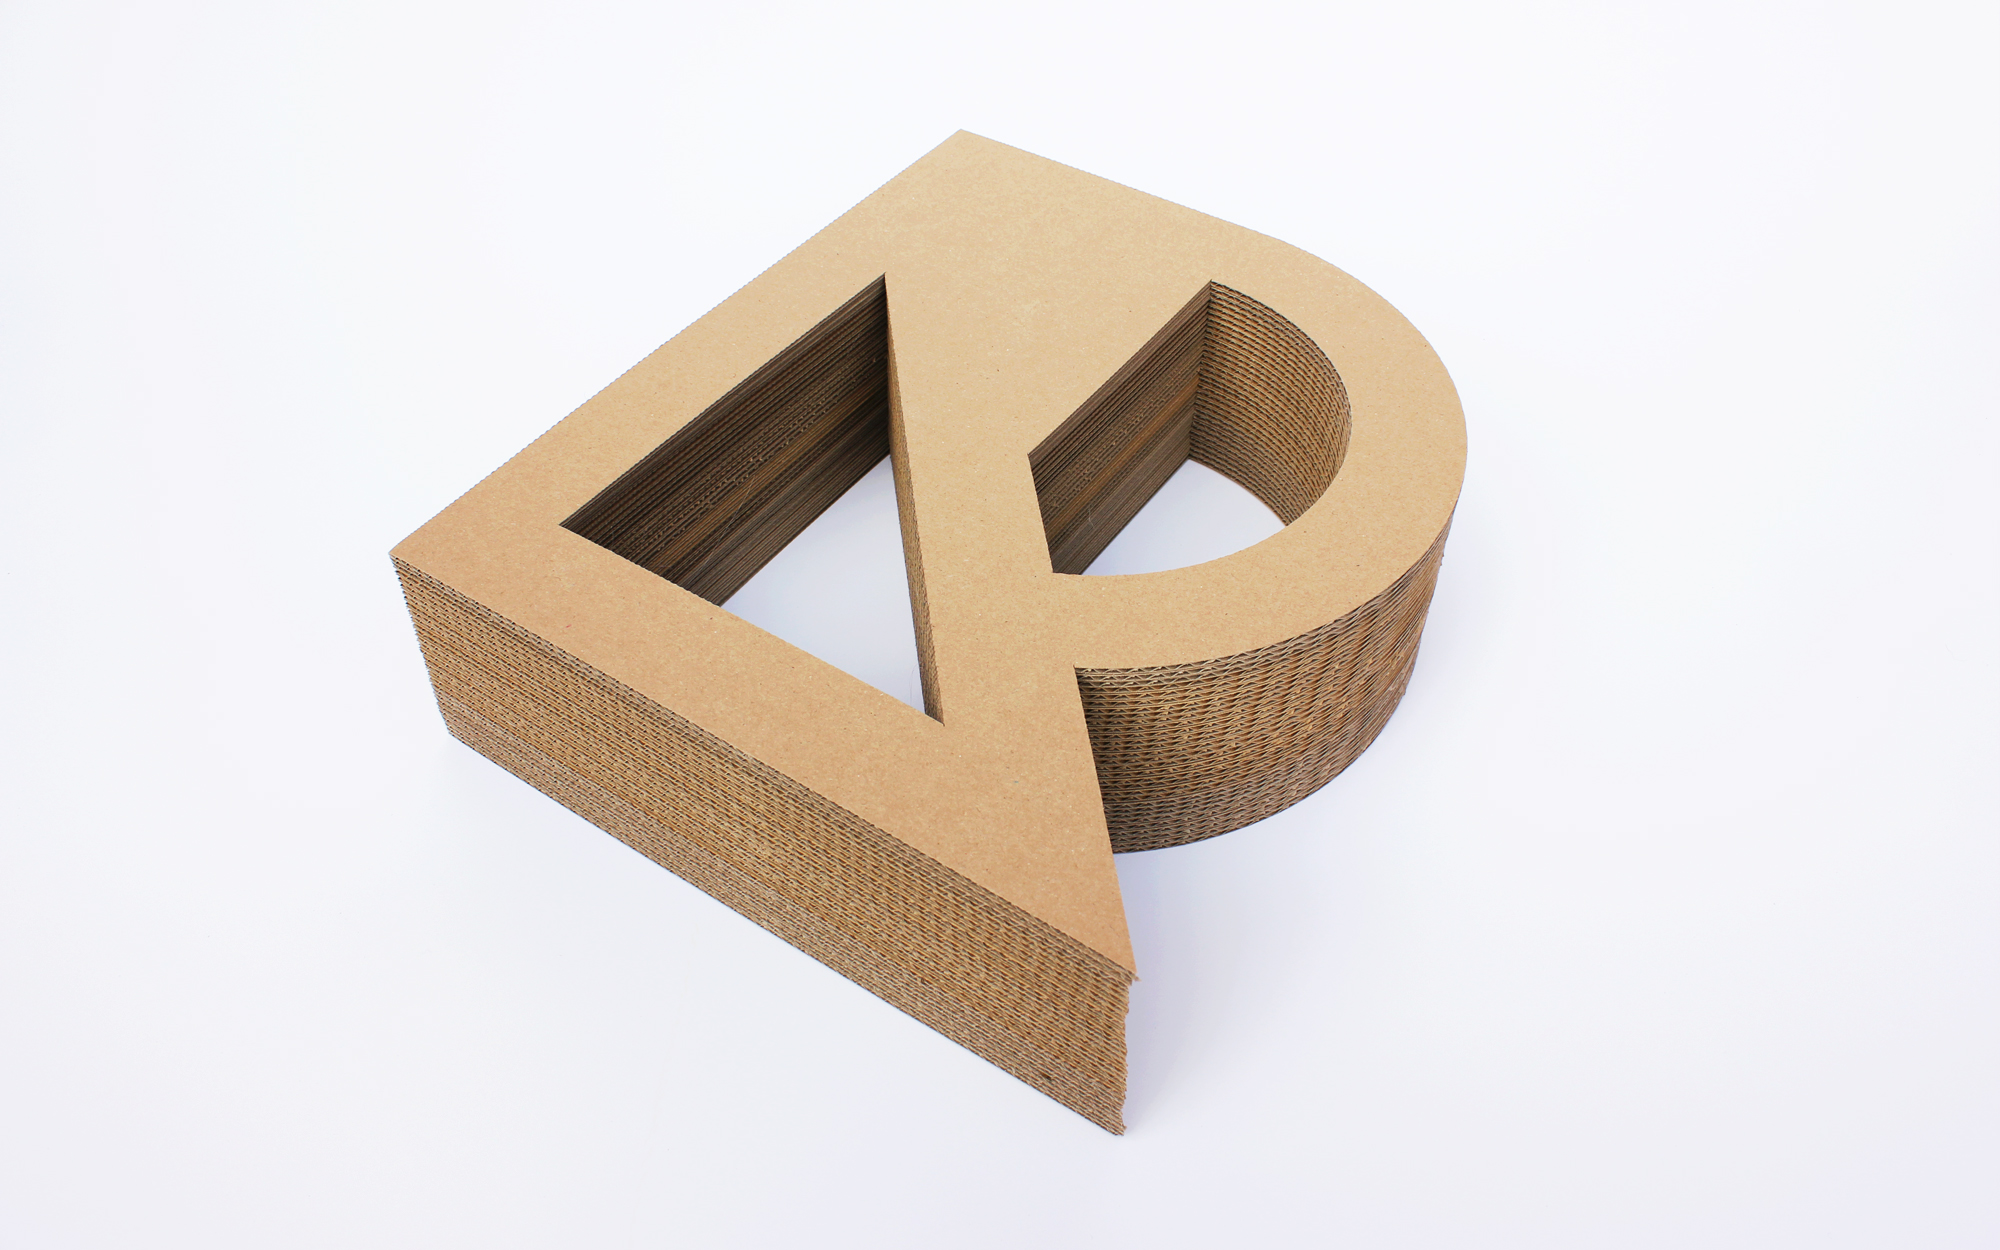 reuse_type_cardboard_typography_matthew_pomorski_graphic_designer_kent_3